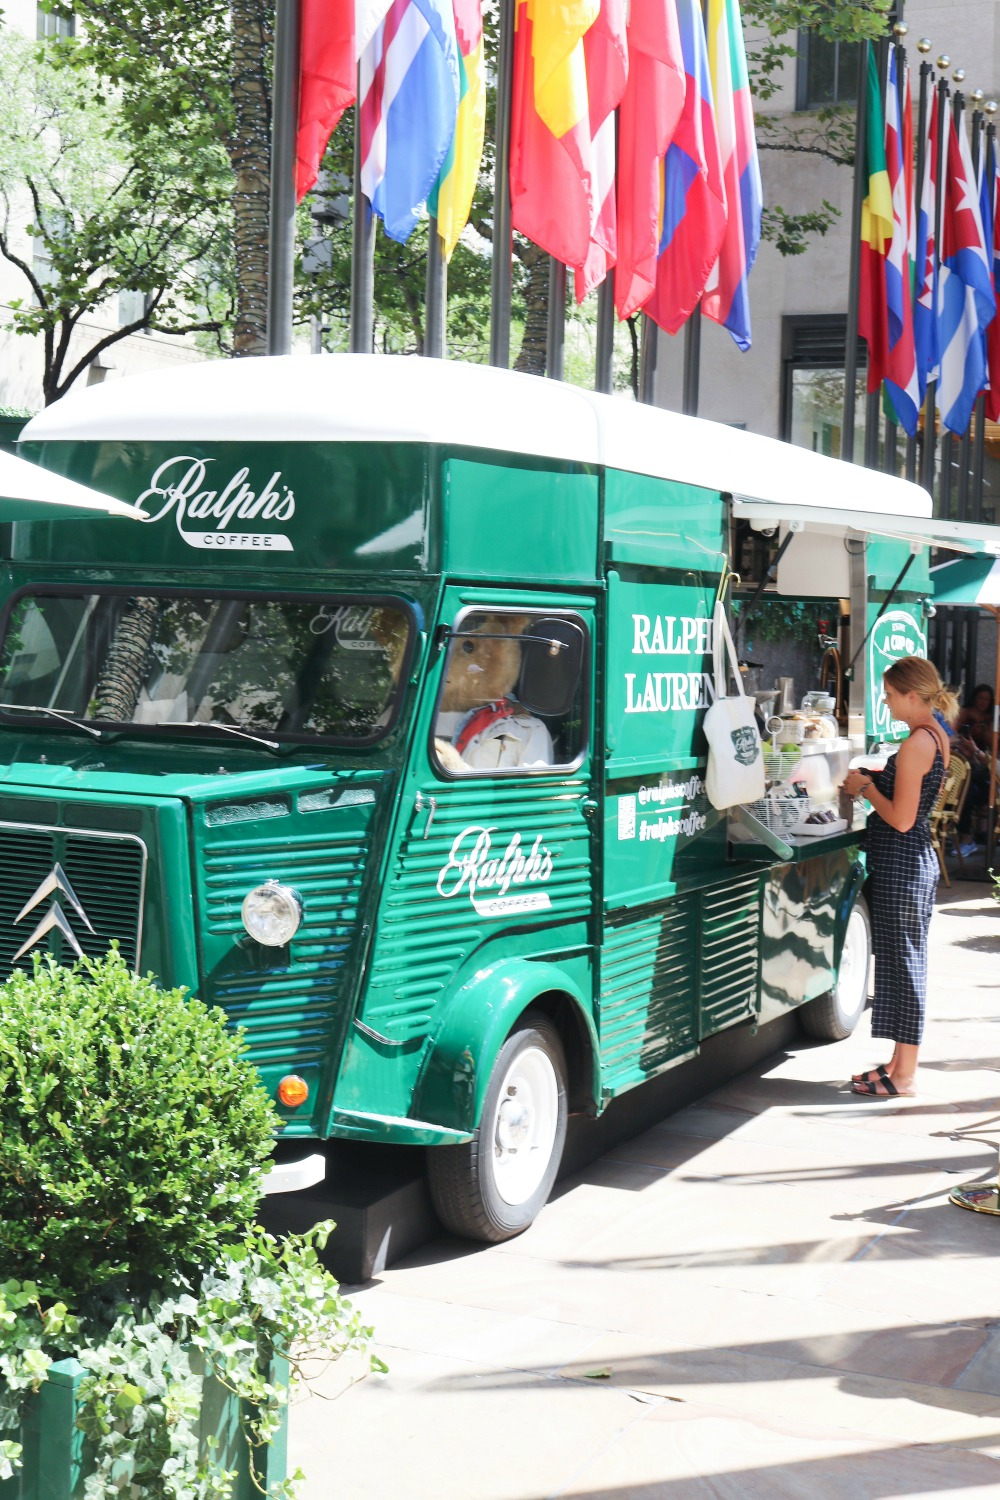 NYC Photo Diary I Ralph's Coffee Truck by Ralph Lauren at Rockefeller Center #Travel #TravelBlogger